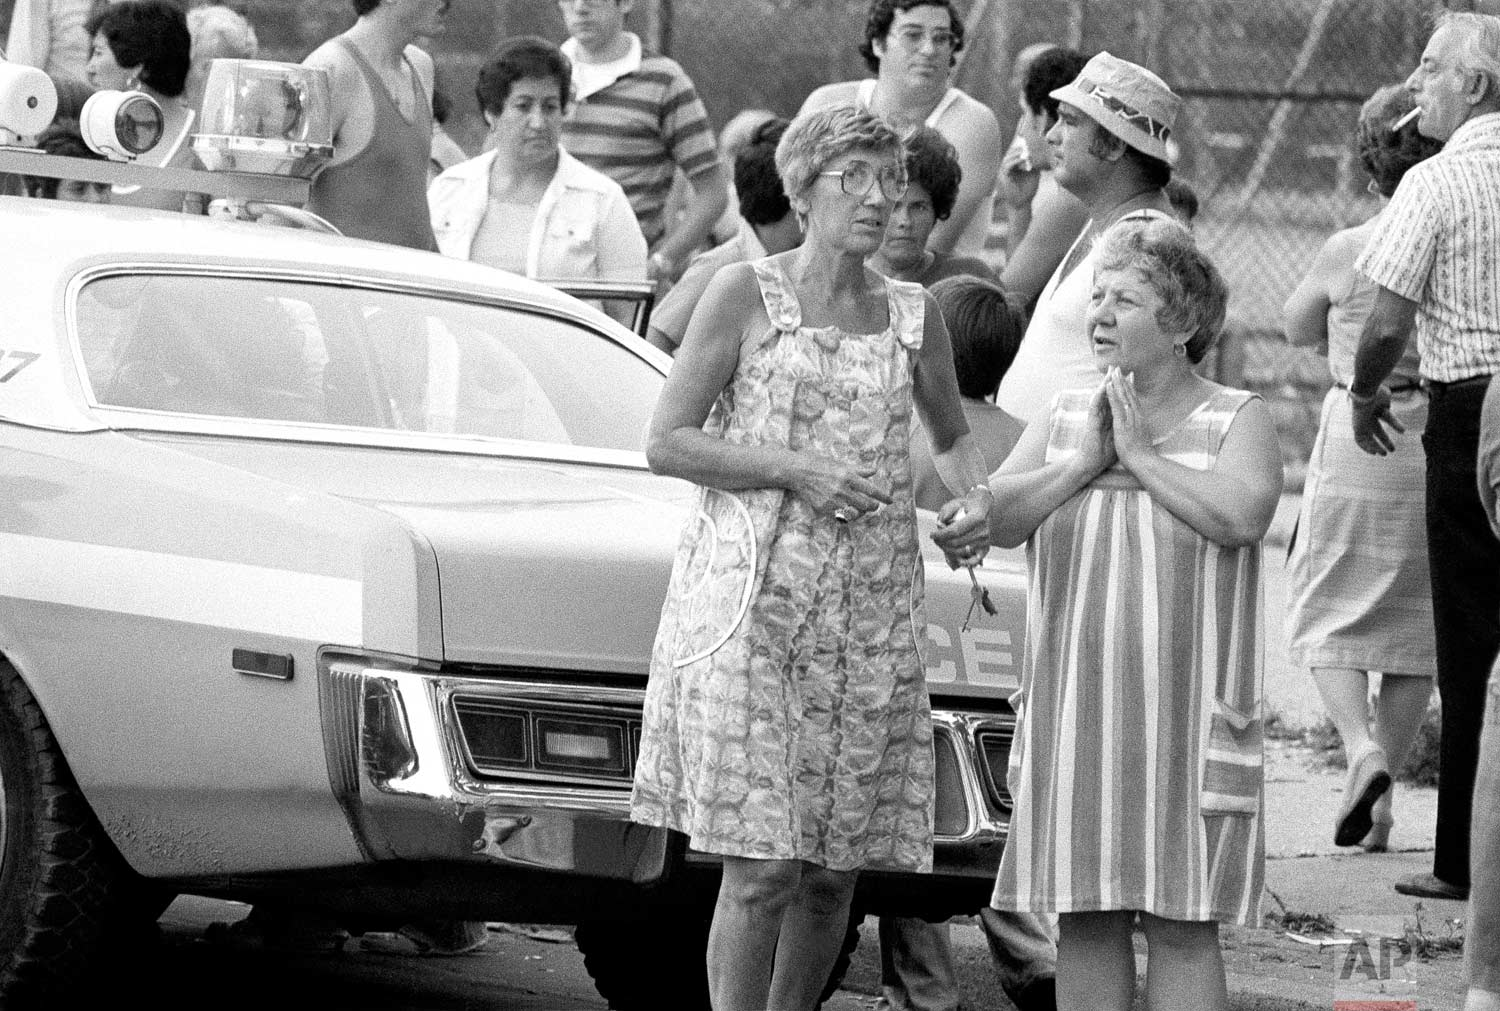 "Residents of Bensonhurst section of Brooklyn and police officers stand near the scene of the shooting by "".44 Caliber Killer"" at Shore Parkway and Bay 16 in New York, July 31, 1977. (AP Photo)"